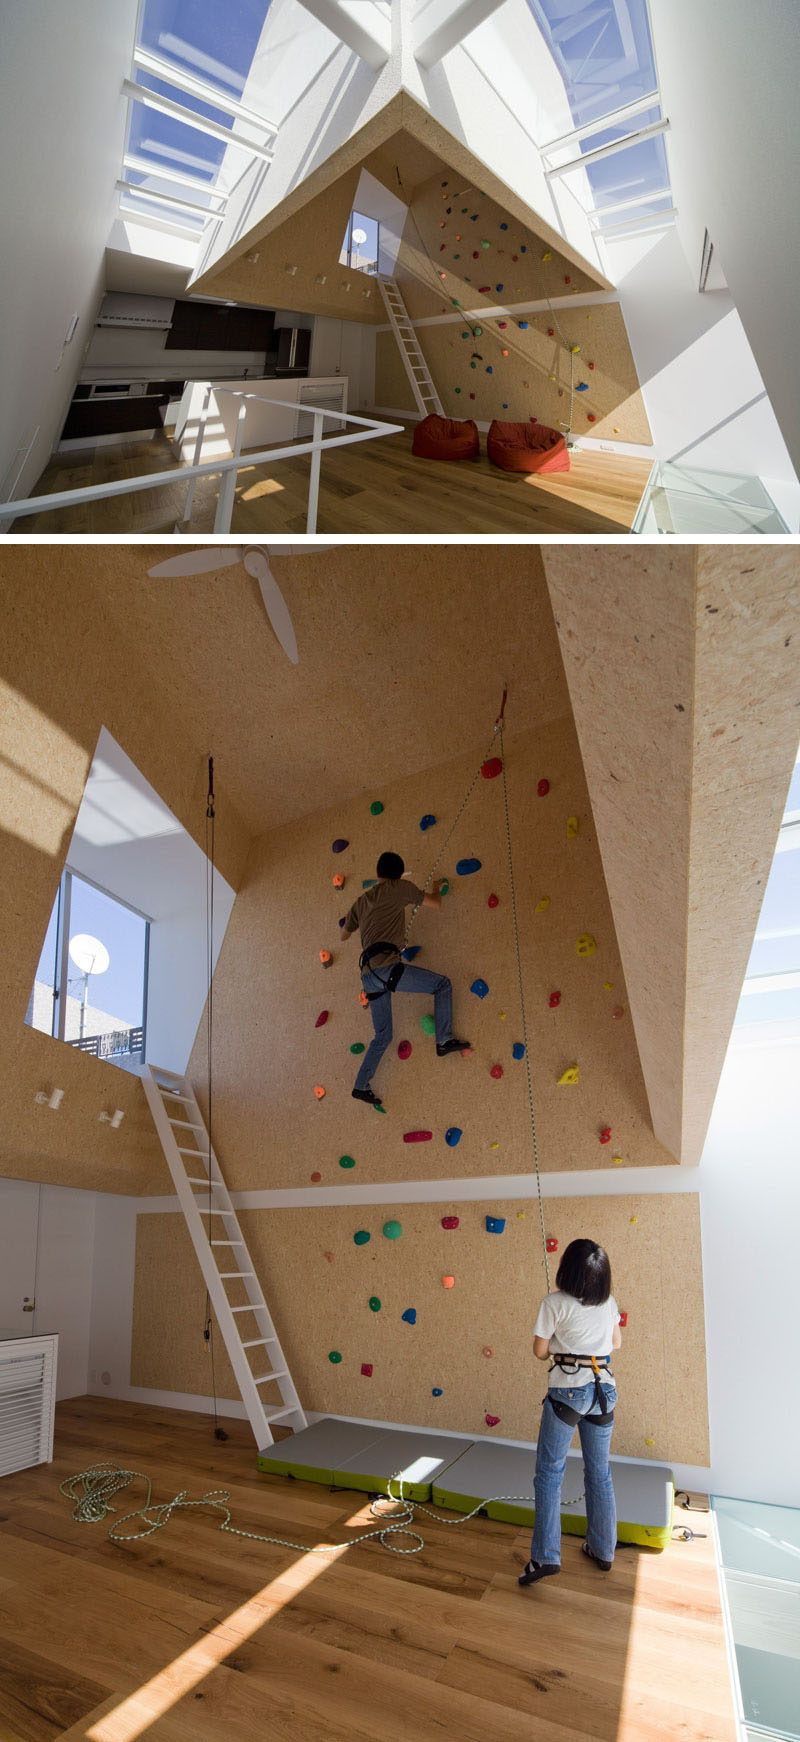 10 Modern Houses With Rock Climbing Walls Home Climbing Wall Rock Climbing Wall Modern House